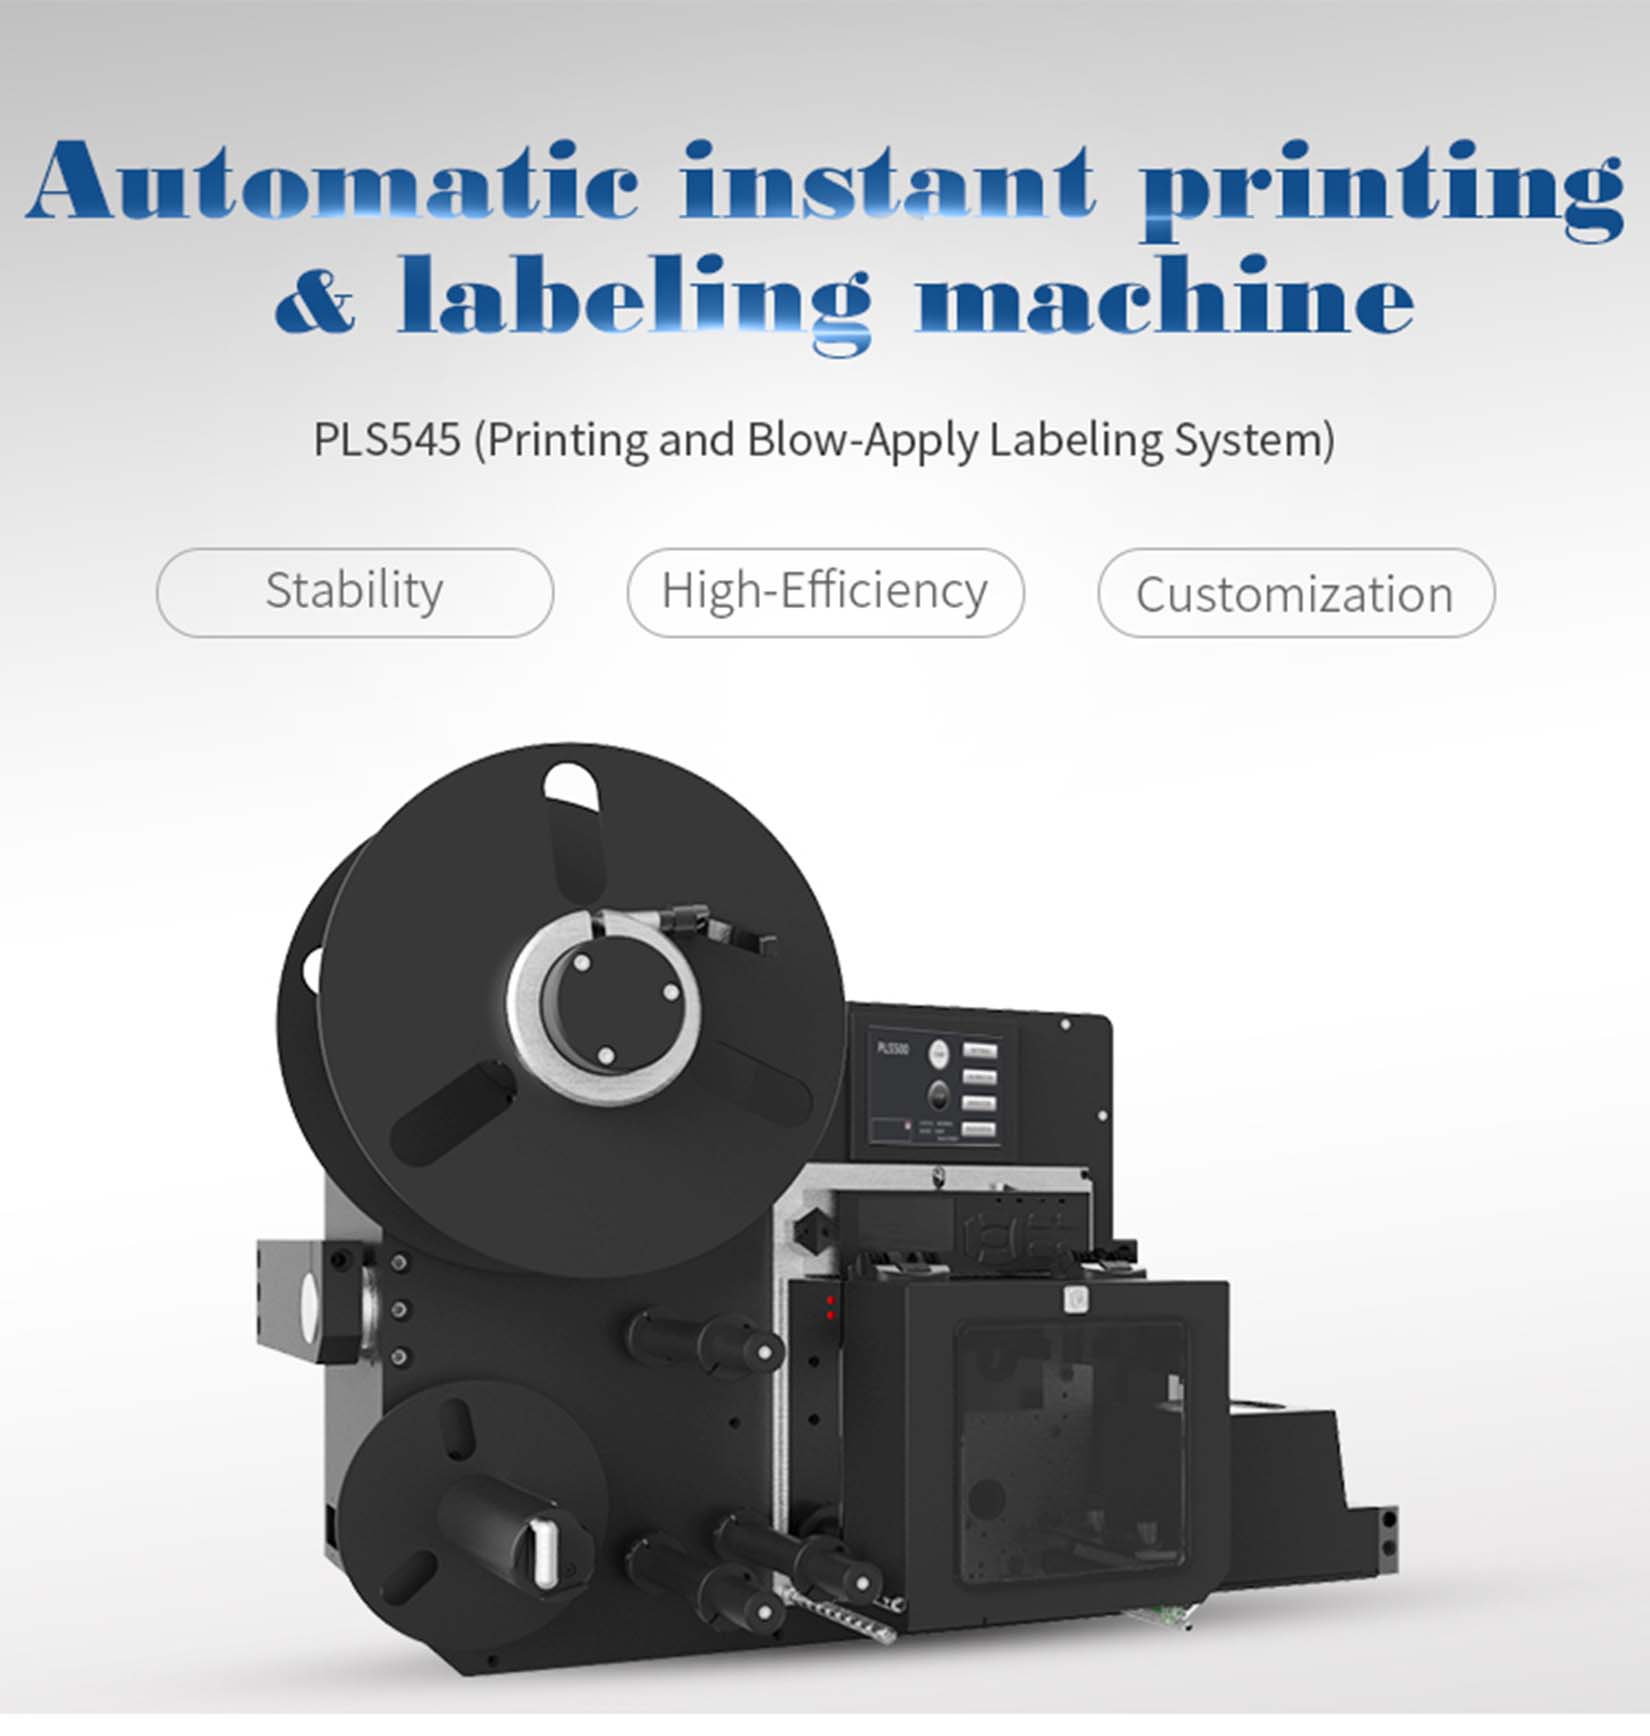 Print and Blow-Apply Labeling System PLS545